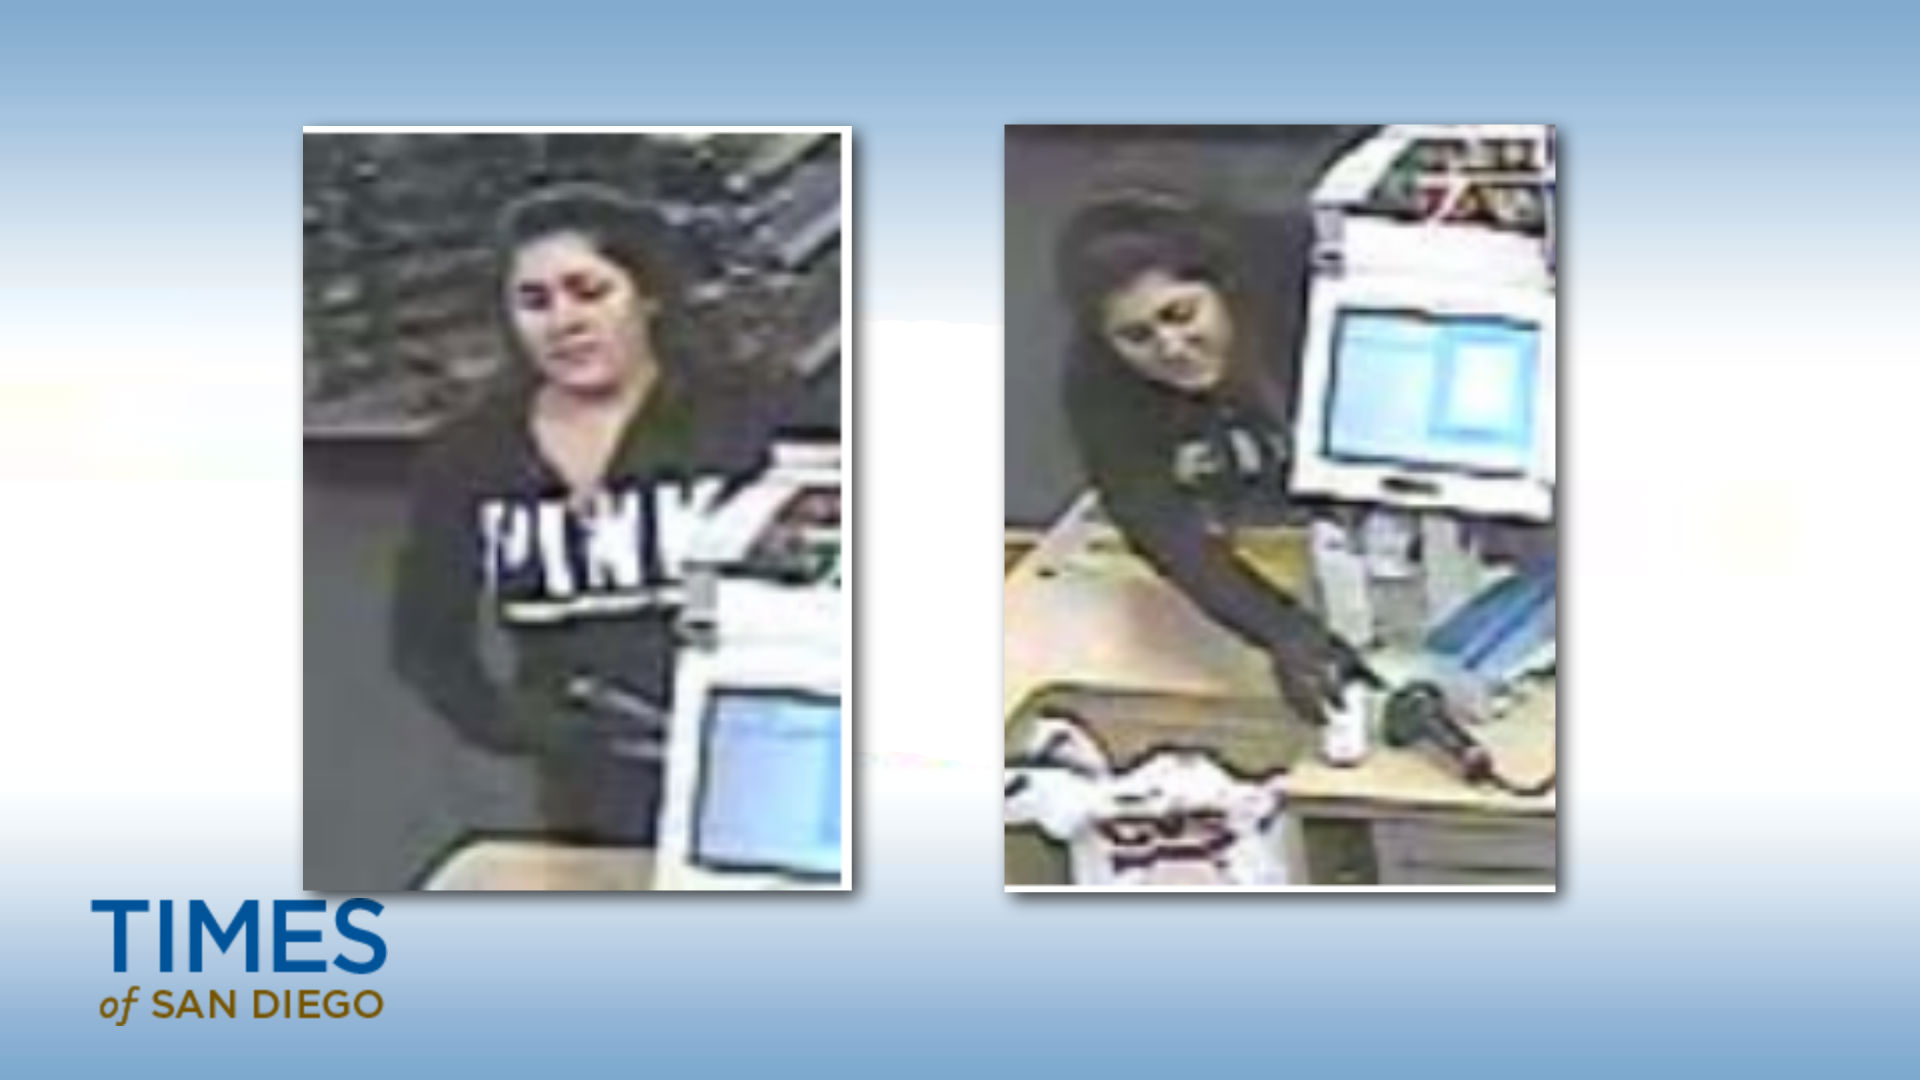 This woman threatened to shoot a CVS pharmacy clerk if she did not get her Percocet. Photo courtesy of the San Diego Sheriff's Department